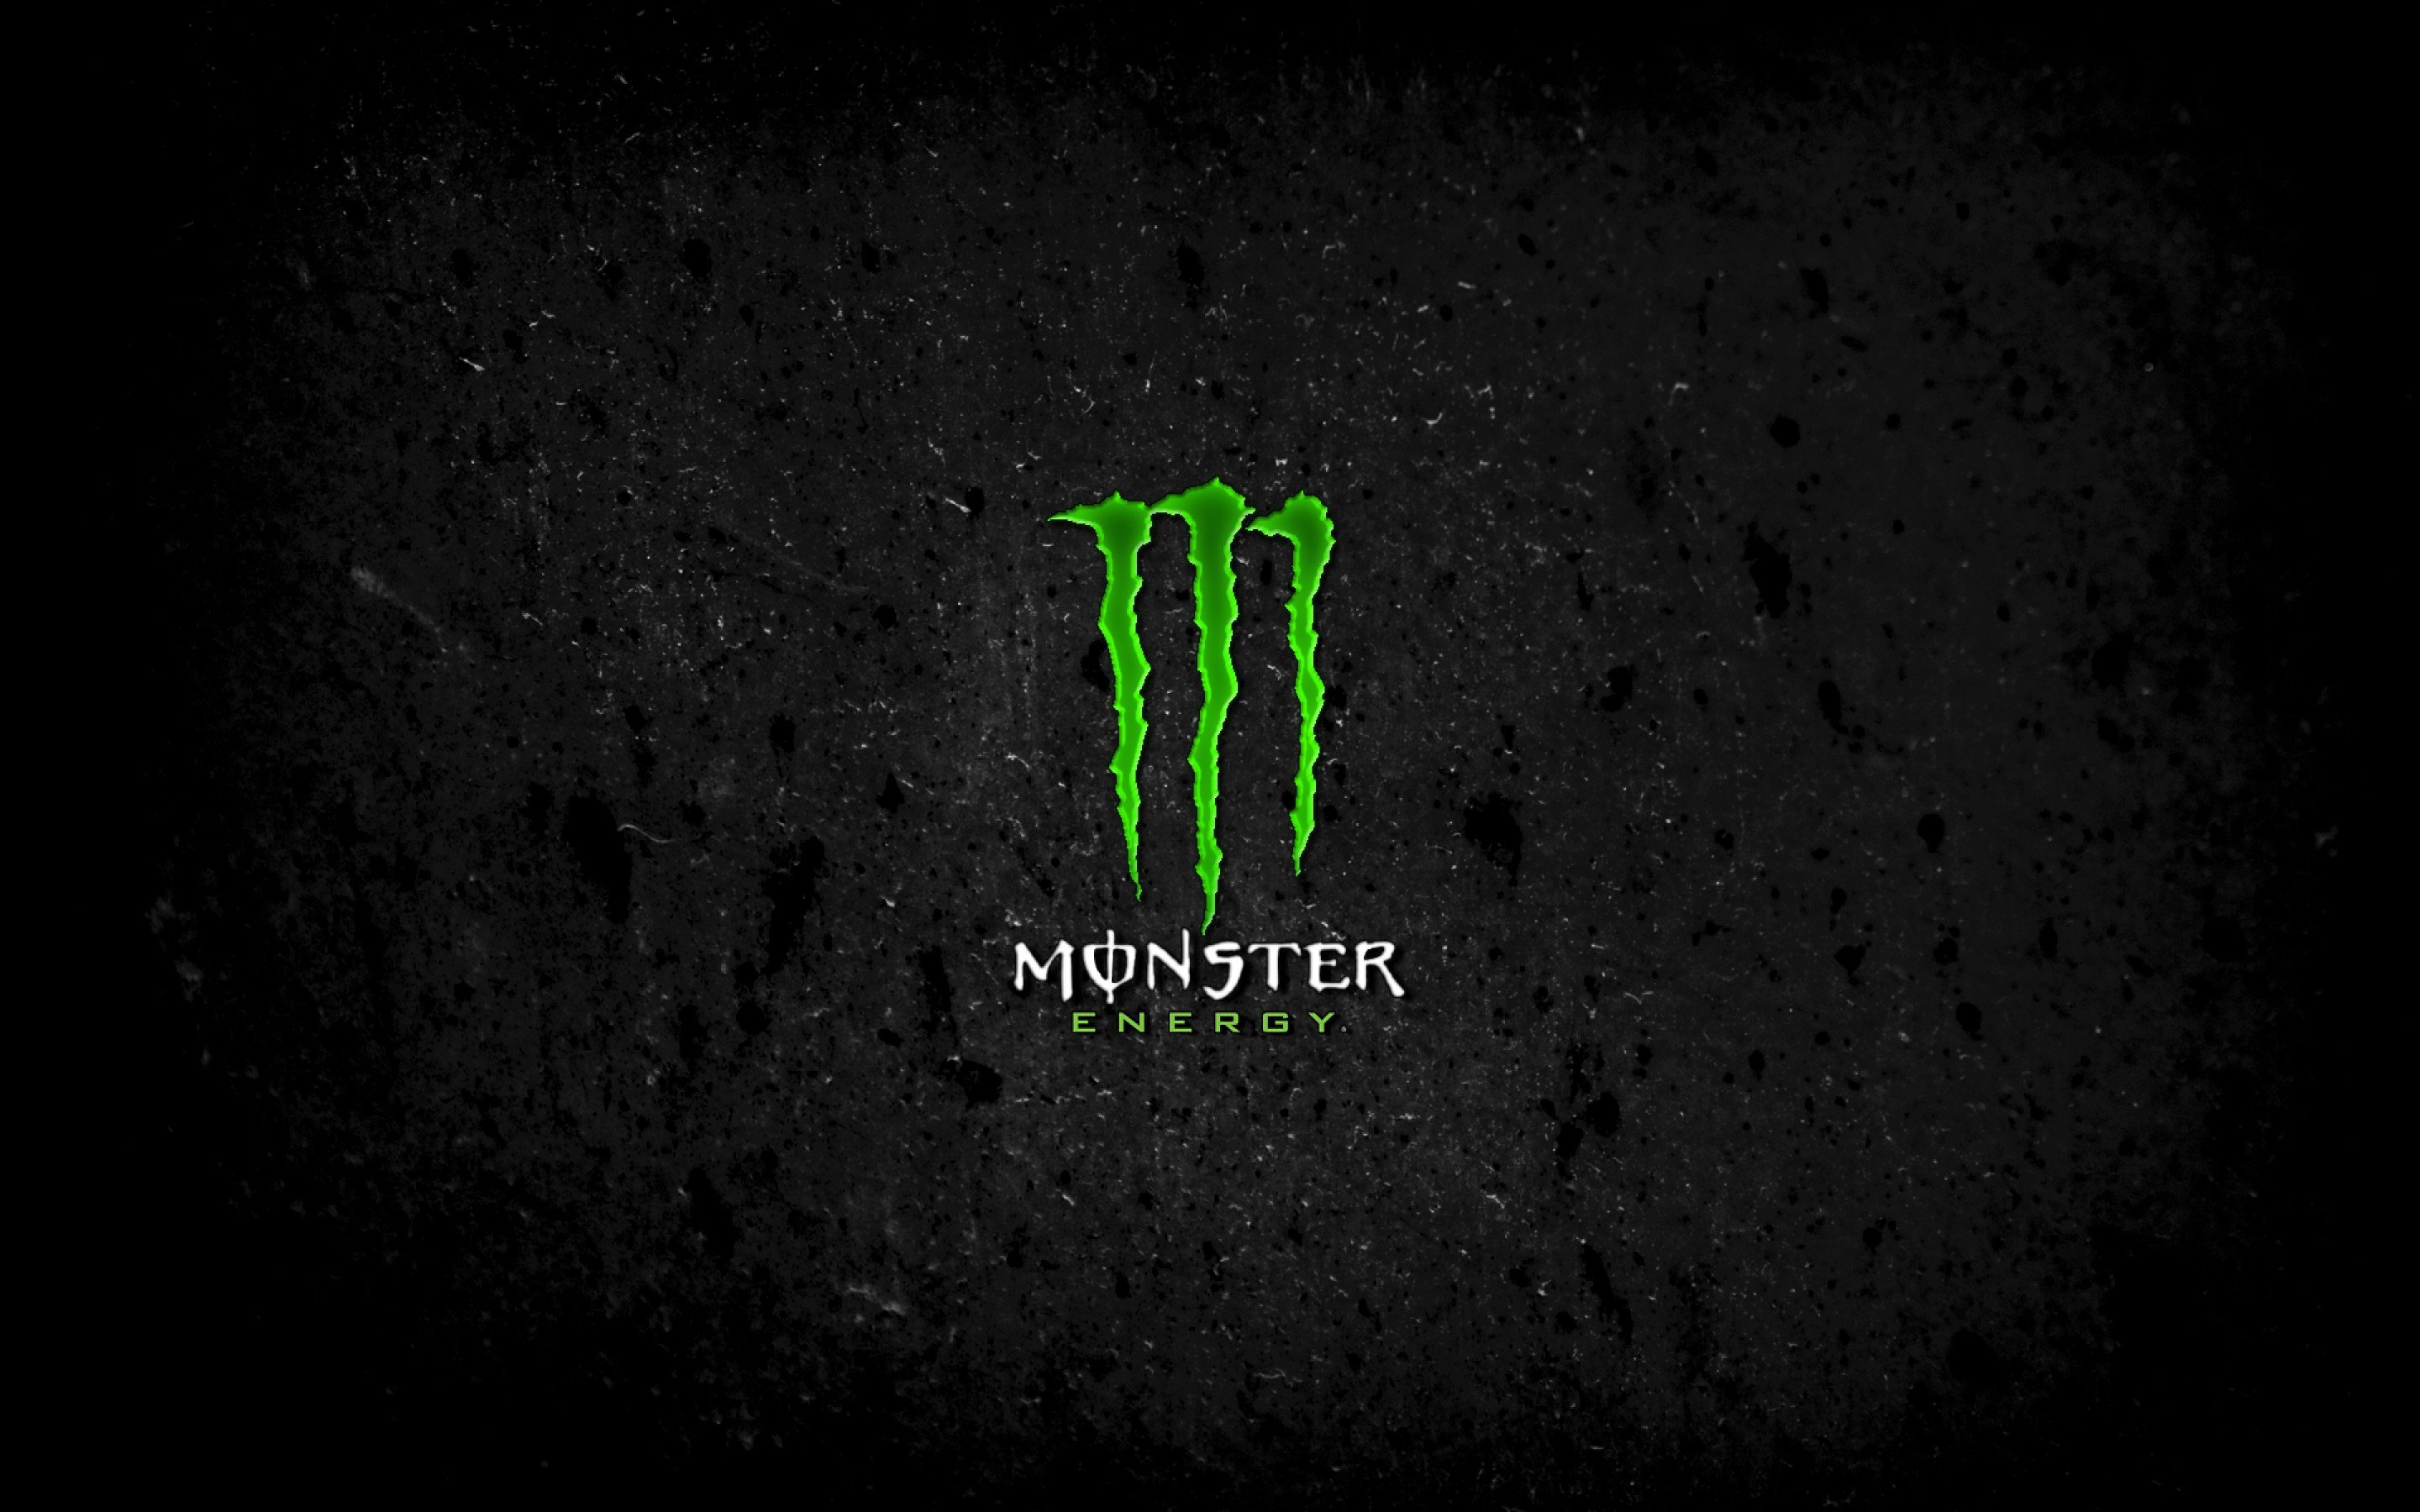 Monster Drink Wallpaper 13 Hd Wallpaper Wallpaper 2880x1800